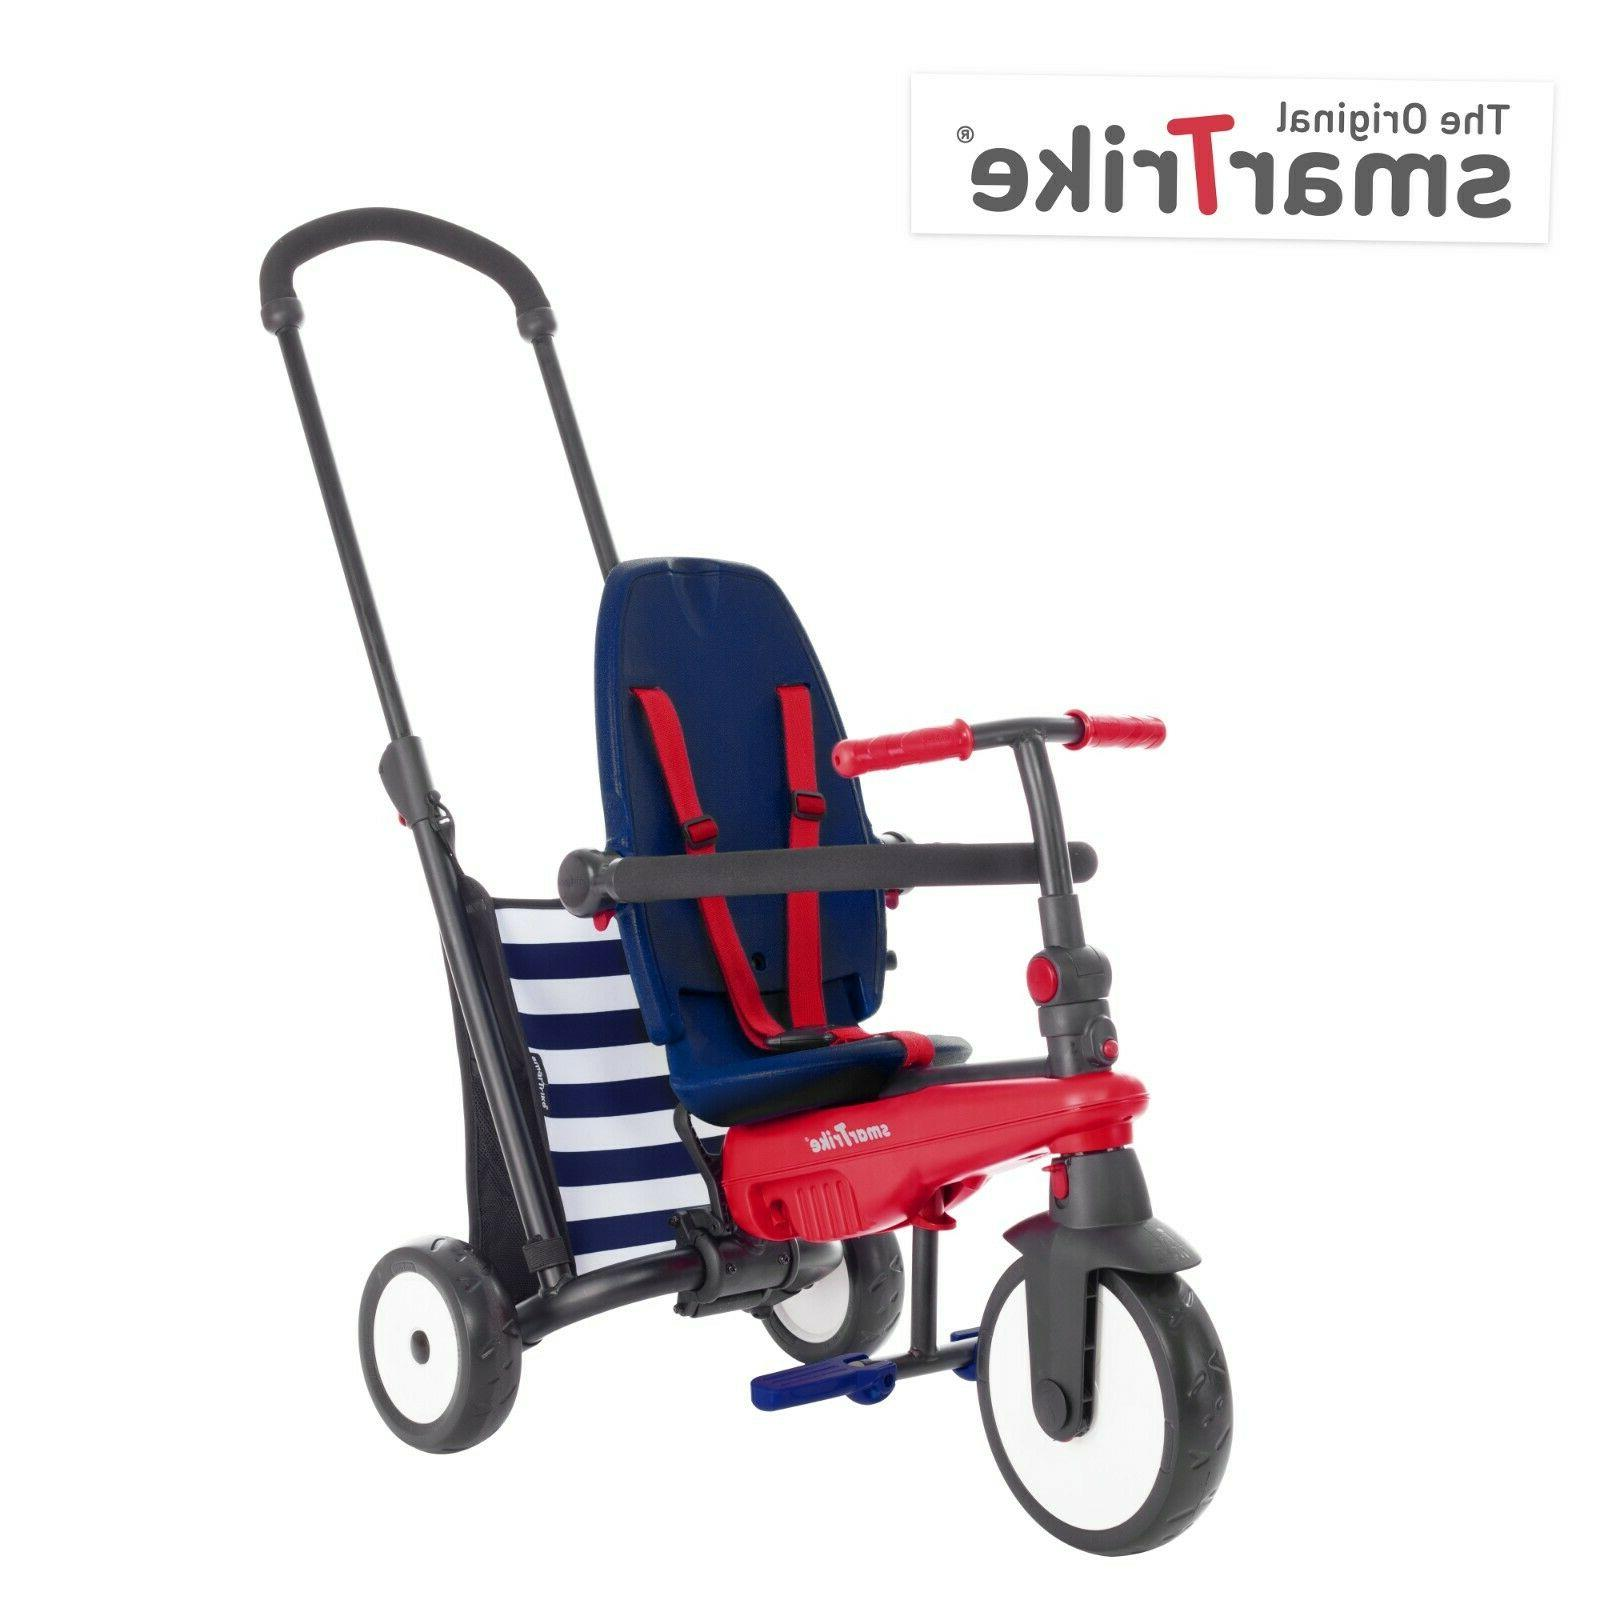 5-in-1 Tricycle 10-36 Months Baby Smart Trike Stroller Navy